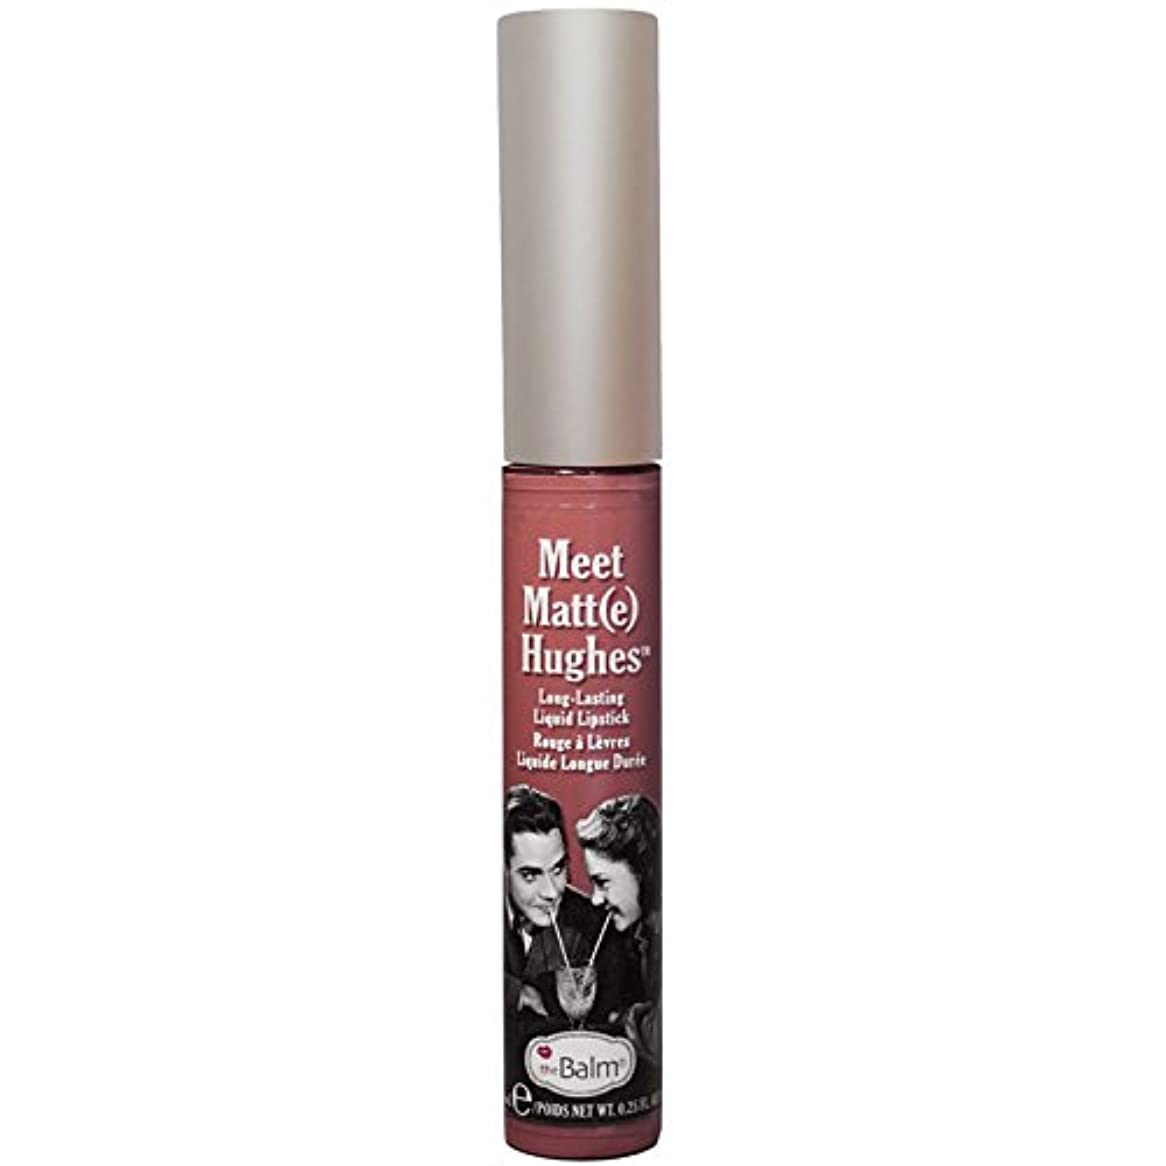 エージェントスチュアート島無駄だtheBalm - Meet Matt(e) Hughes Long-Lasting Liquid Lipstick Sincere [並行輸入品]